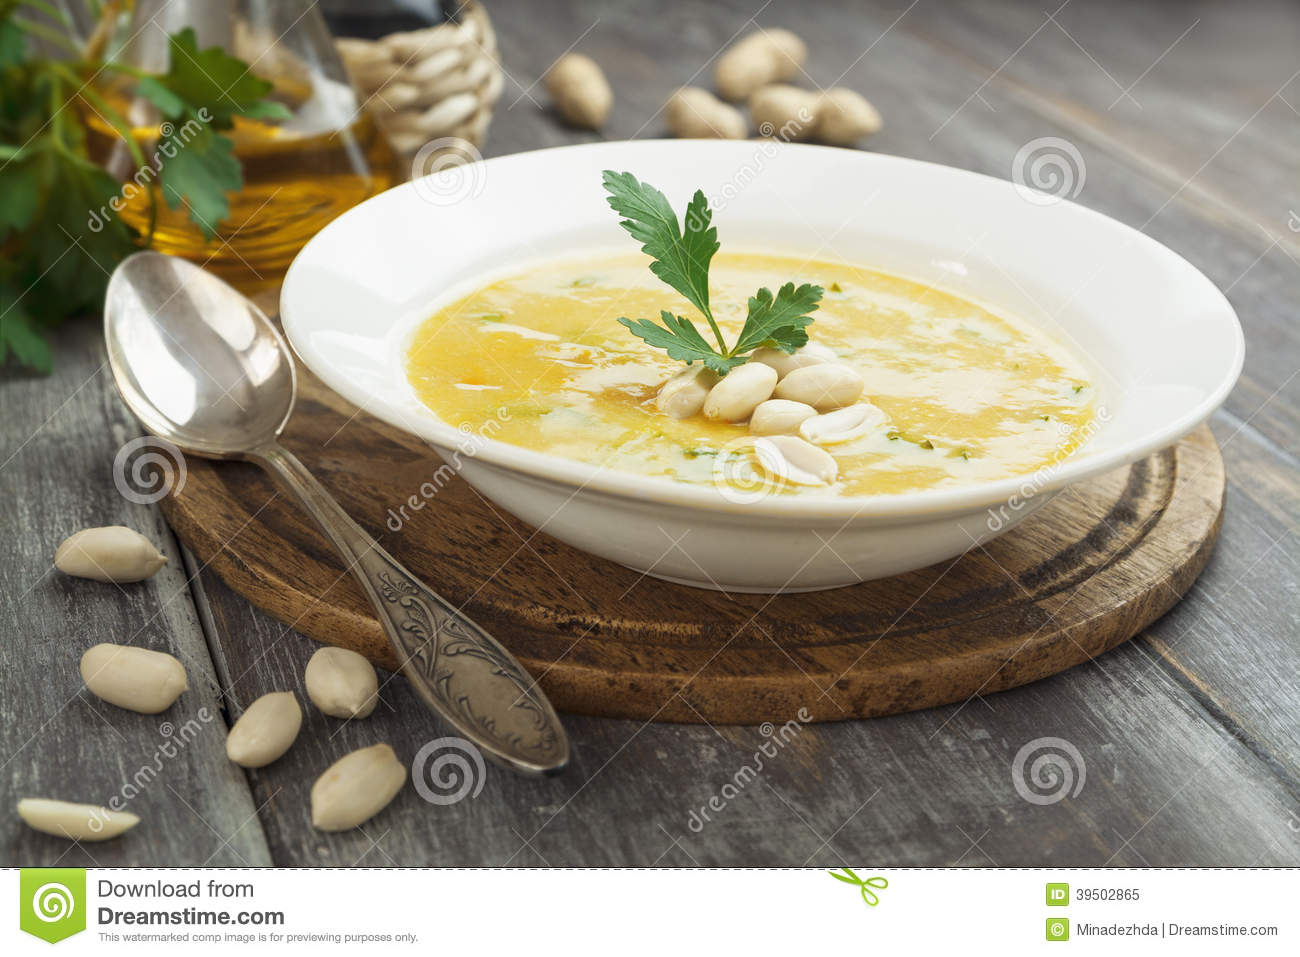 Chickpea soup with peanuts and herbs